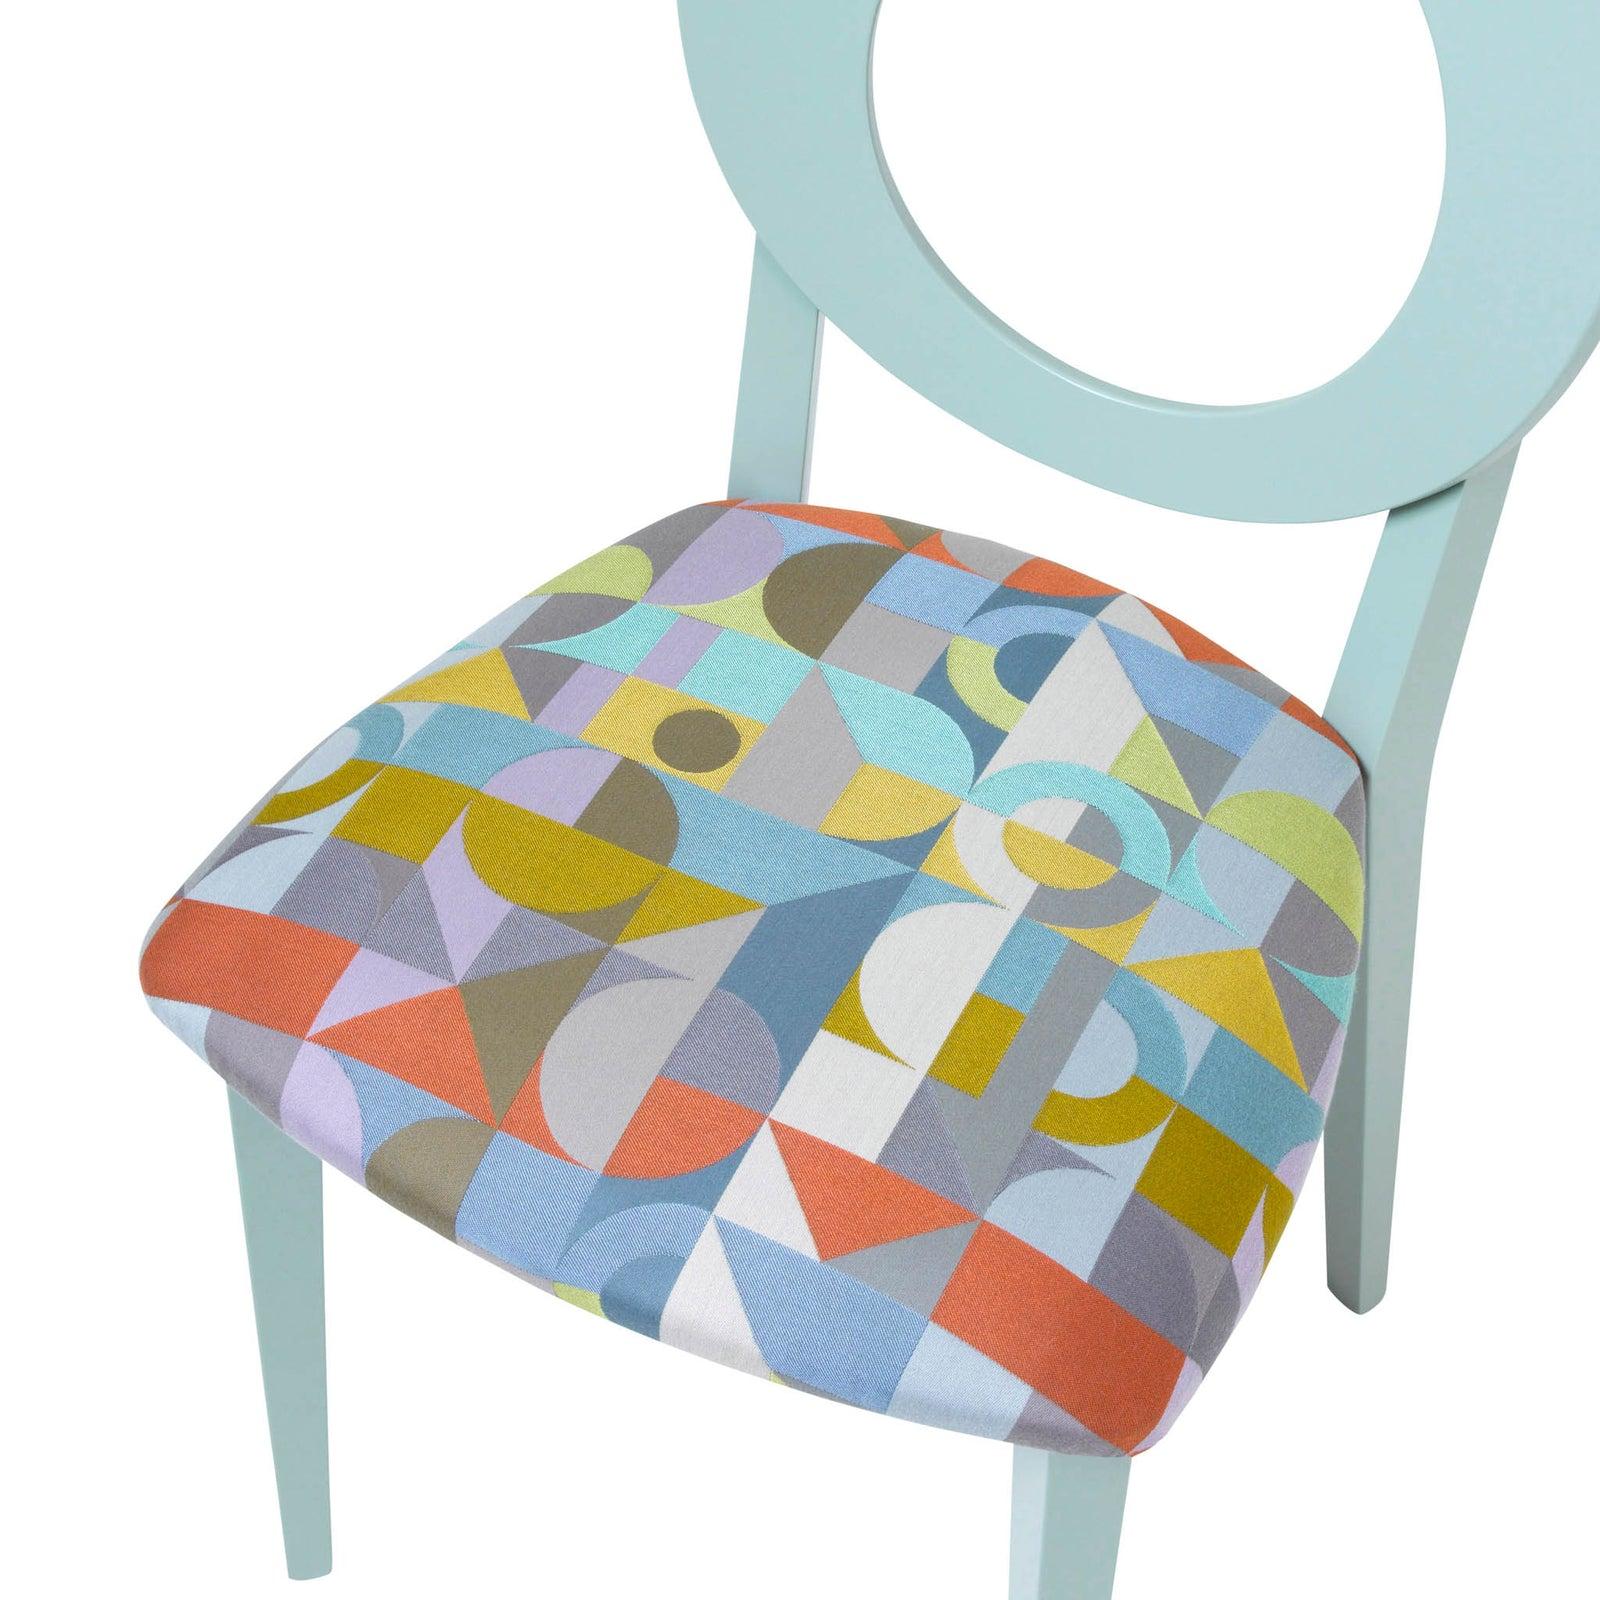 Chloe Contemporary Chair in the beautiful Motown from Margo Selby